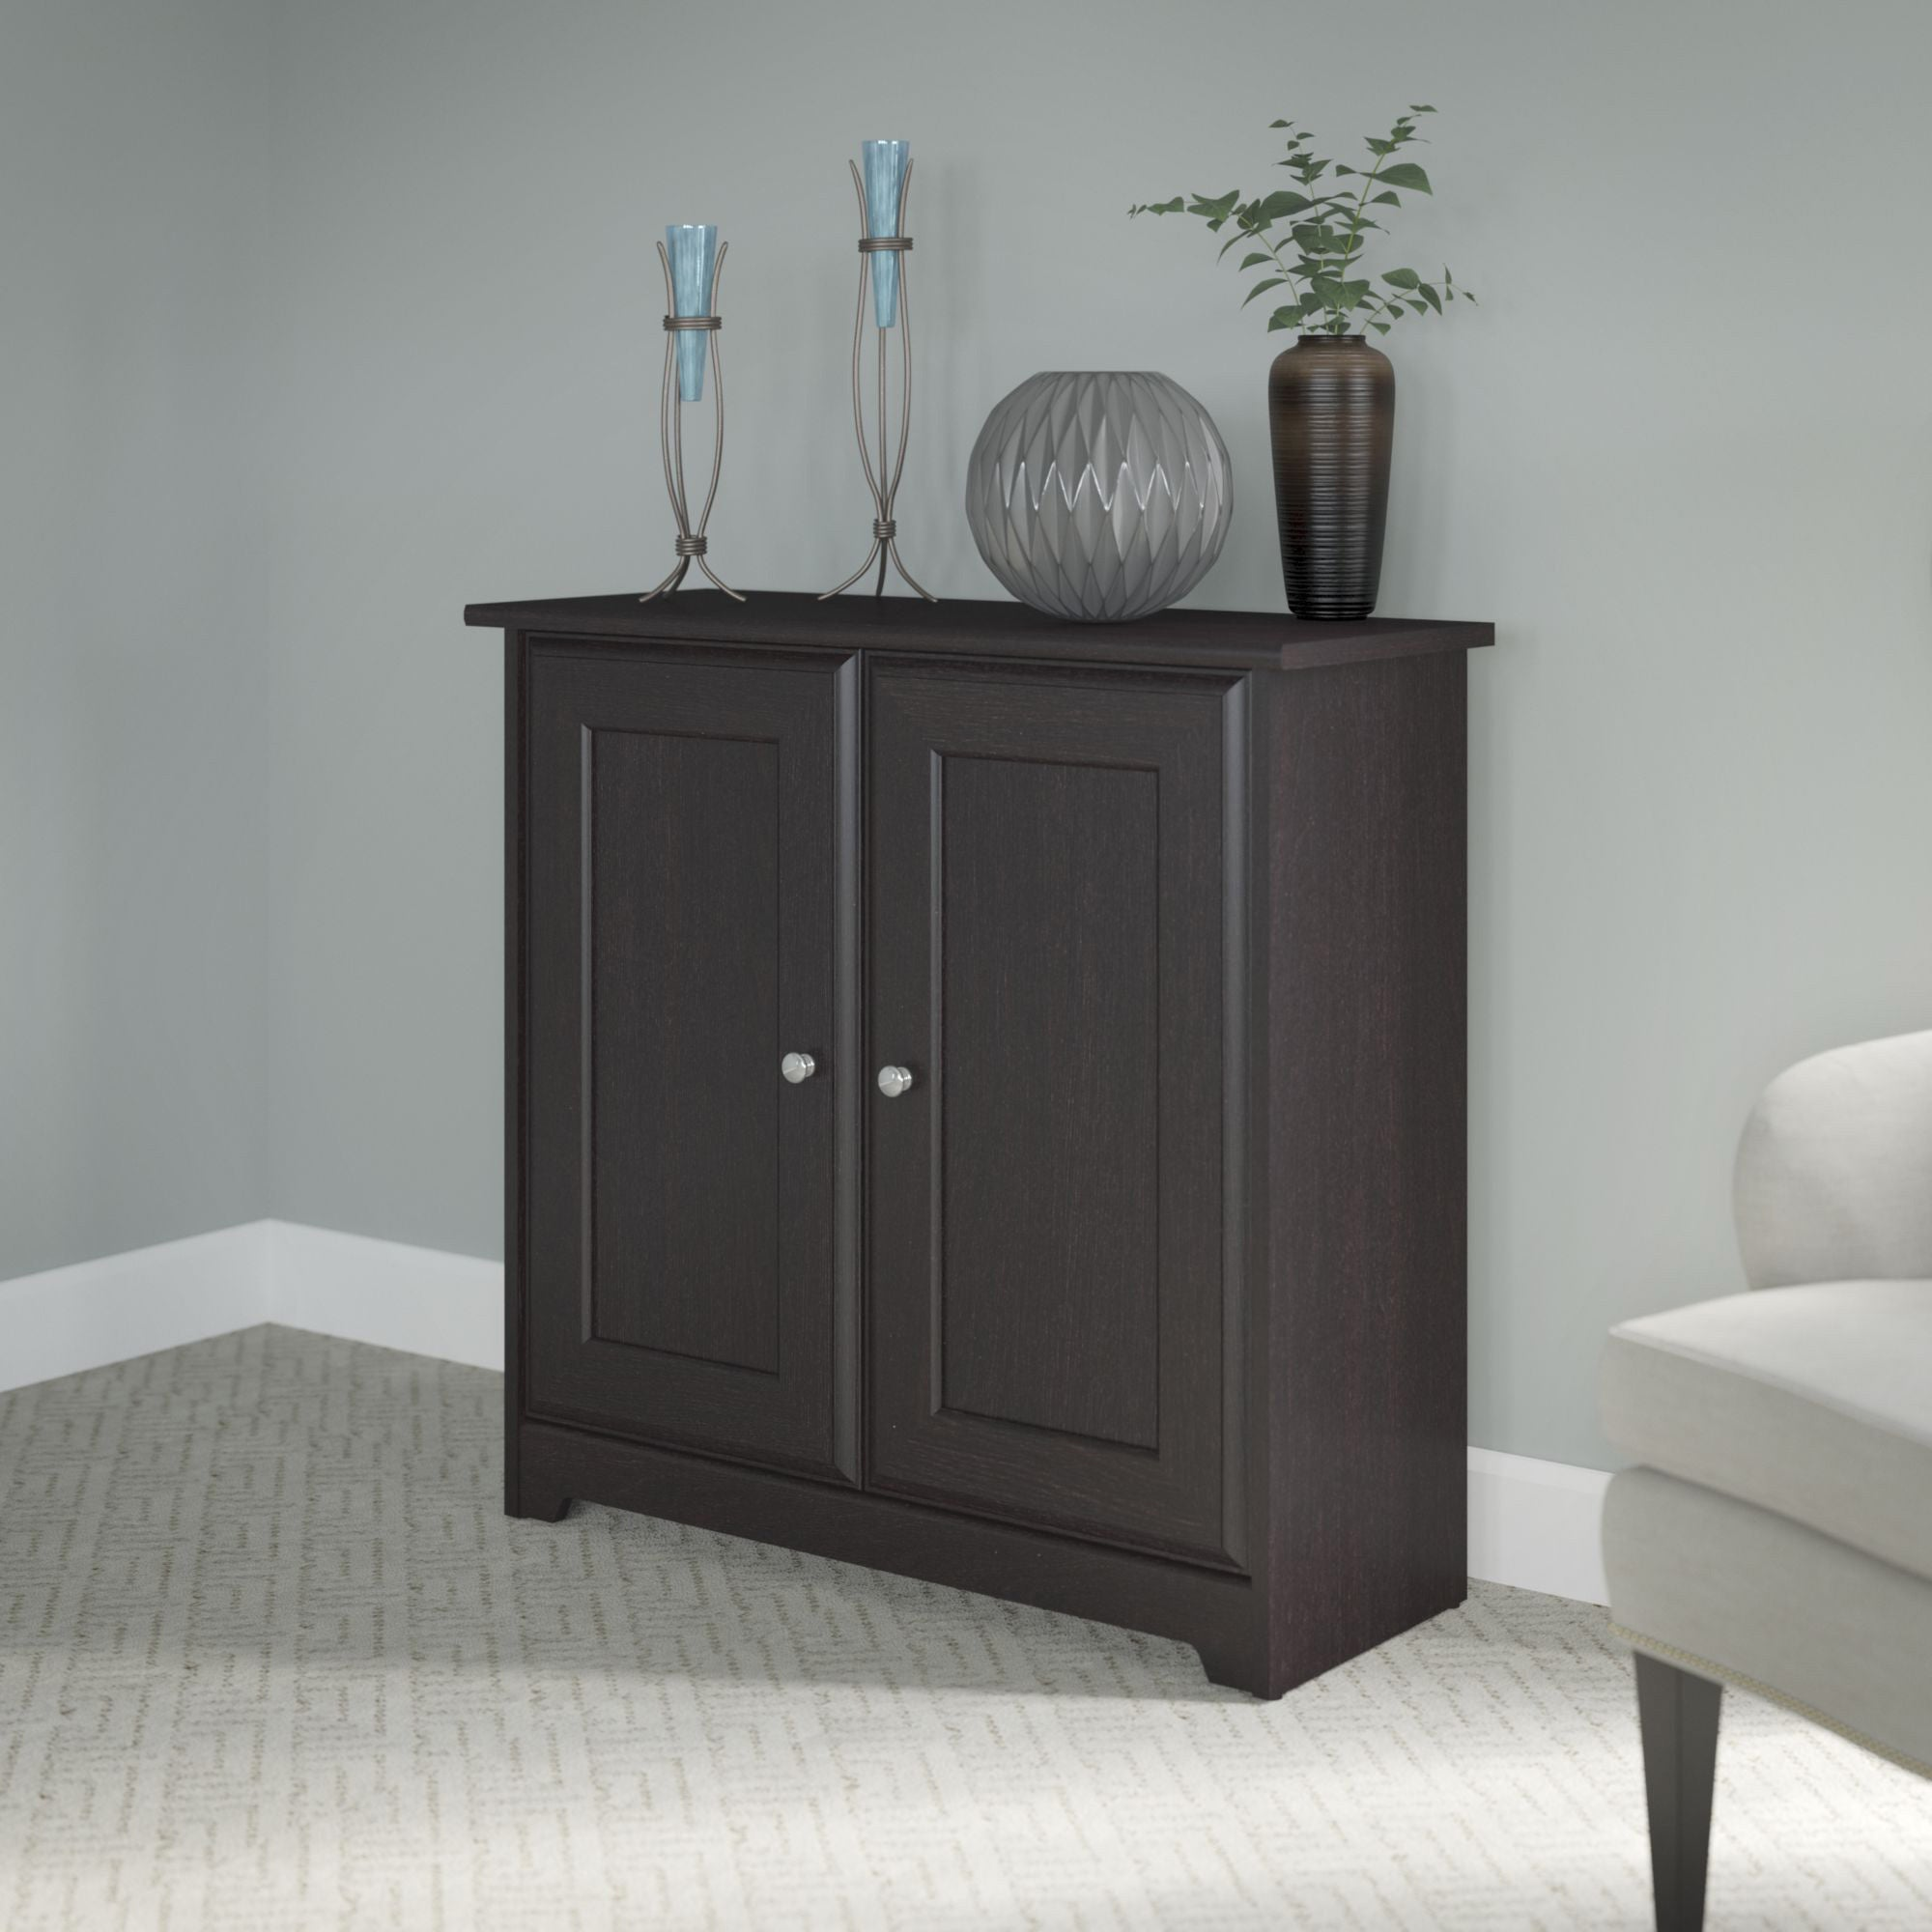 Copper Grove Daintree Espresso Oak Low Storage Cabinet With Doors Free Shipping On Orders Over 45 11968437